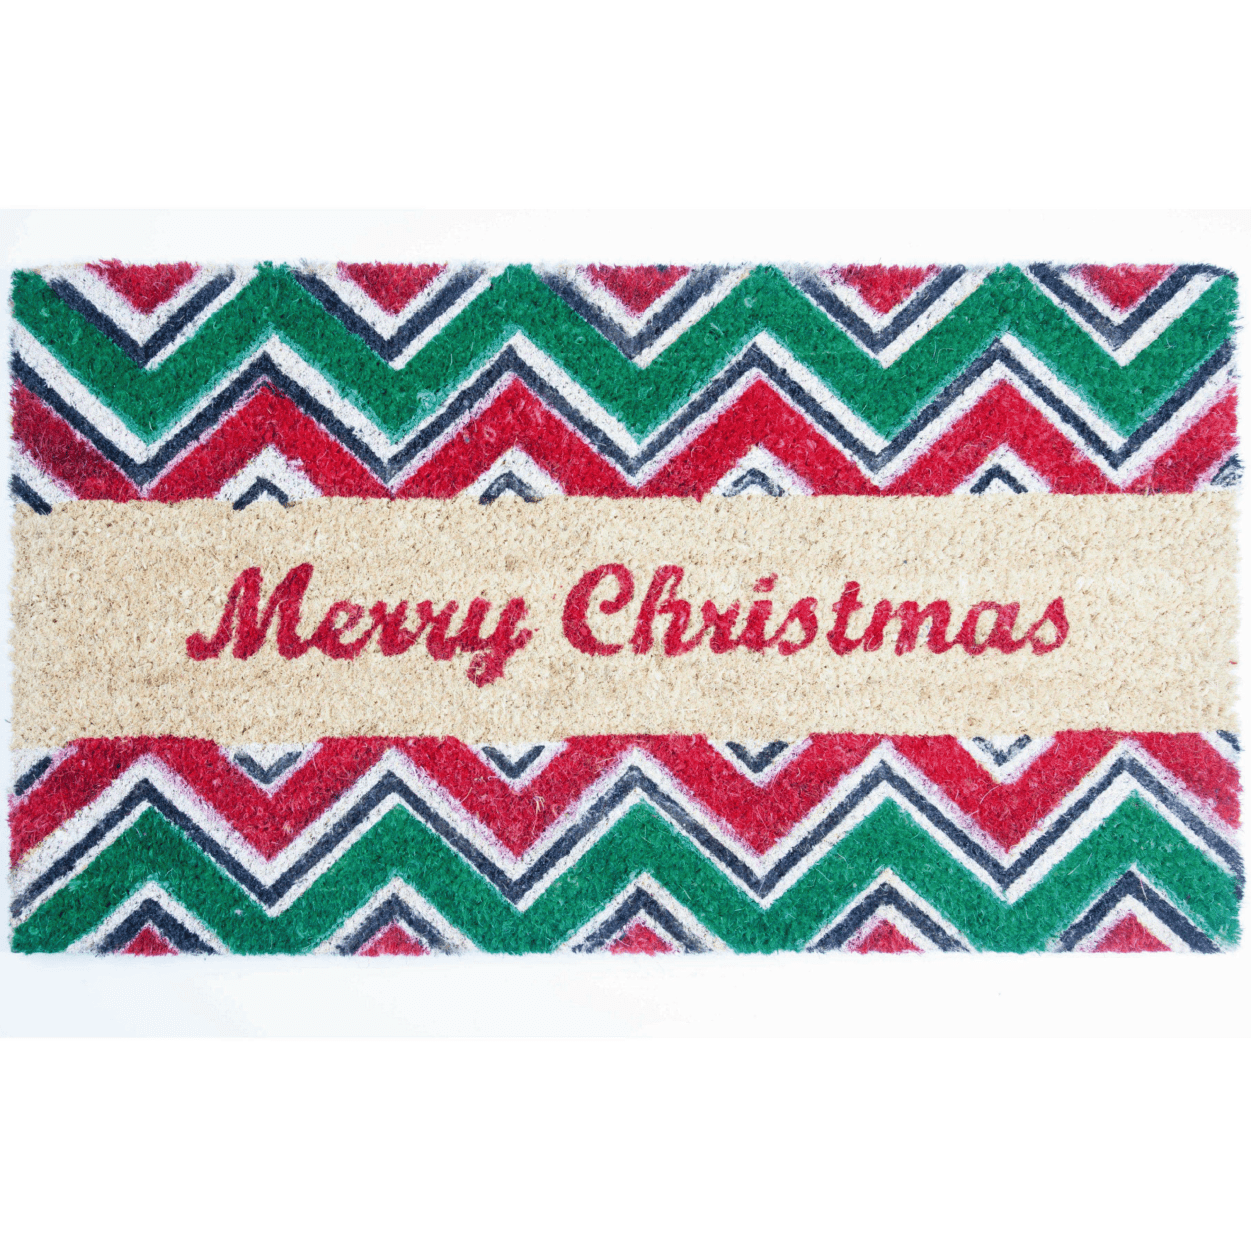 Goa Coir Christmas Door Mat - Merry Christmas - 40 x 70cm - only5pounds.com